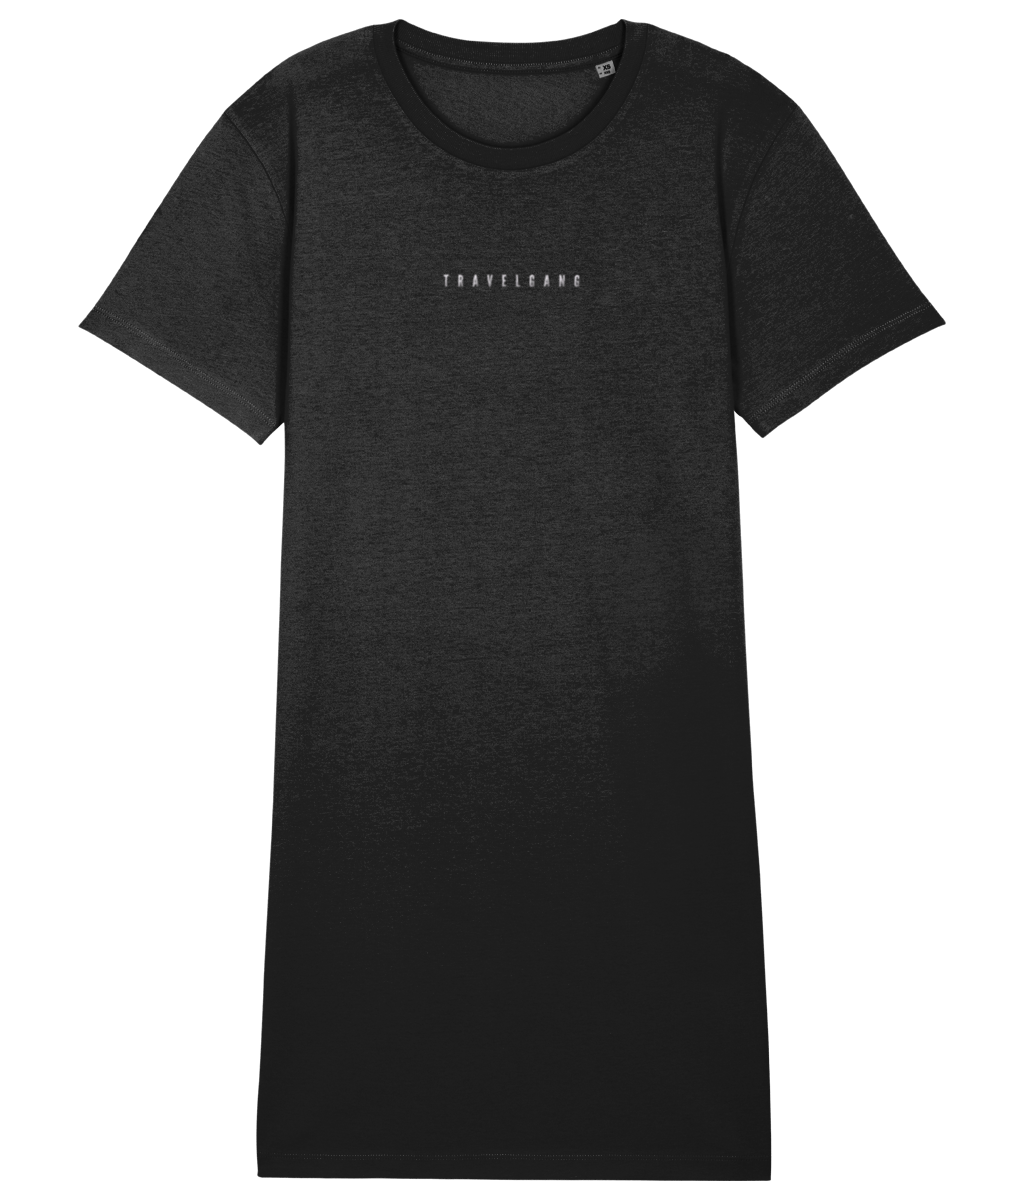 TG Lounge T-Shirt - Black